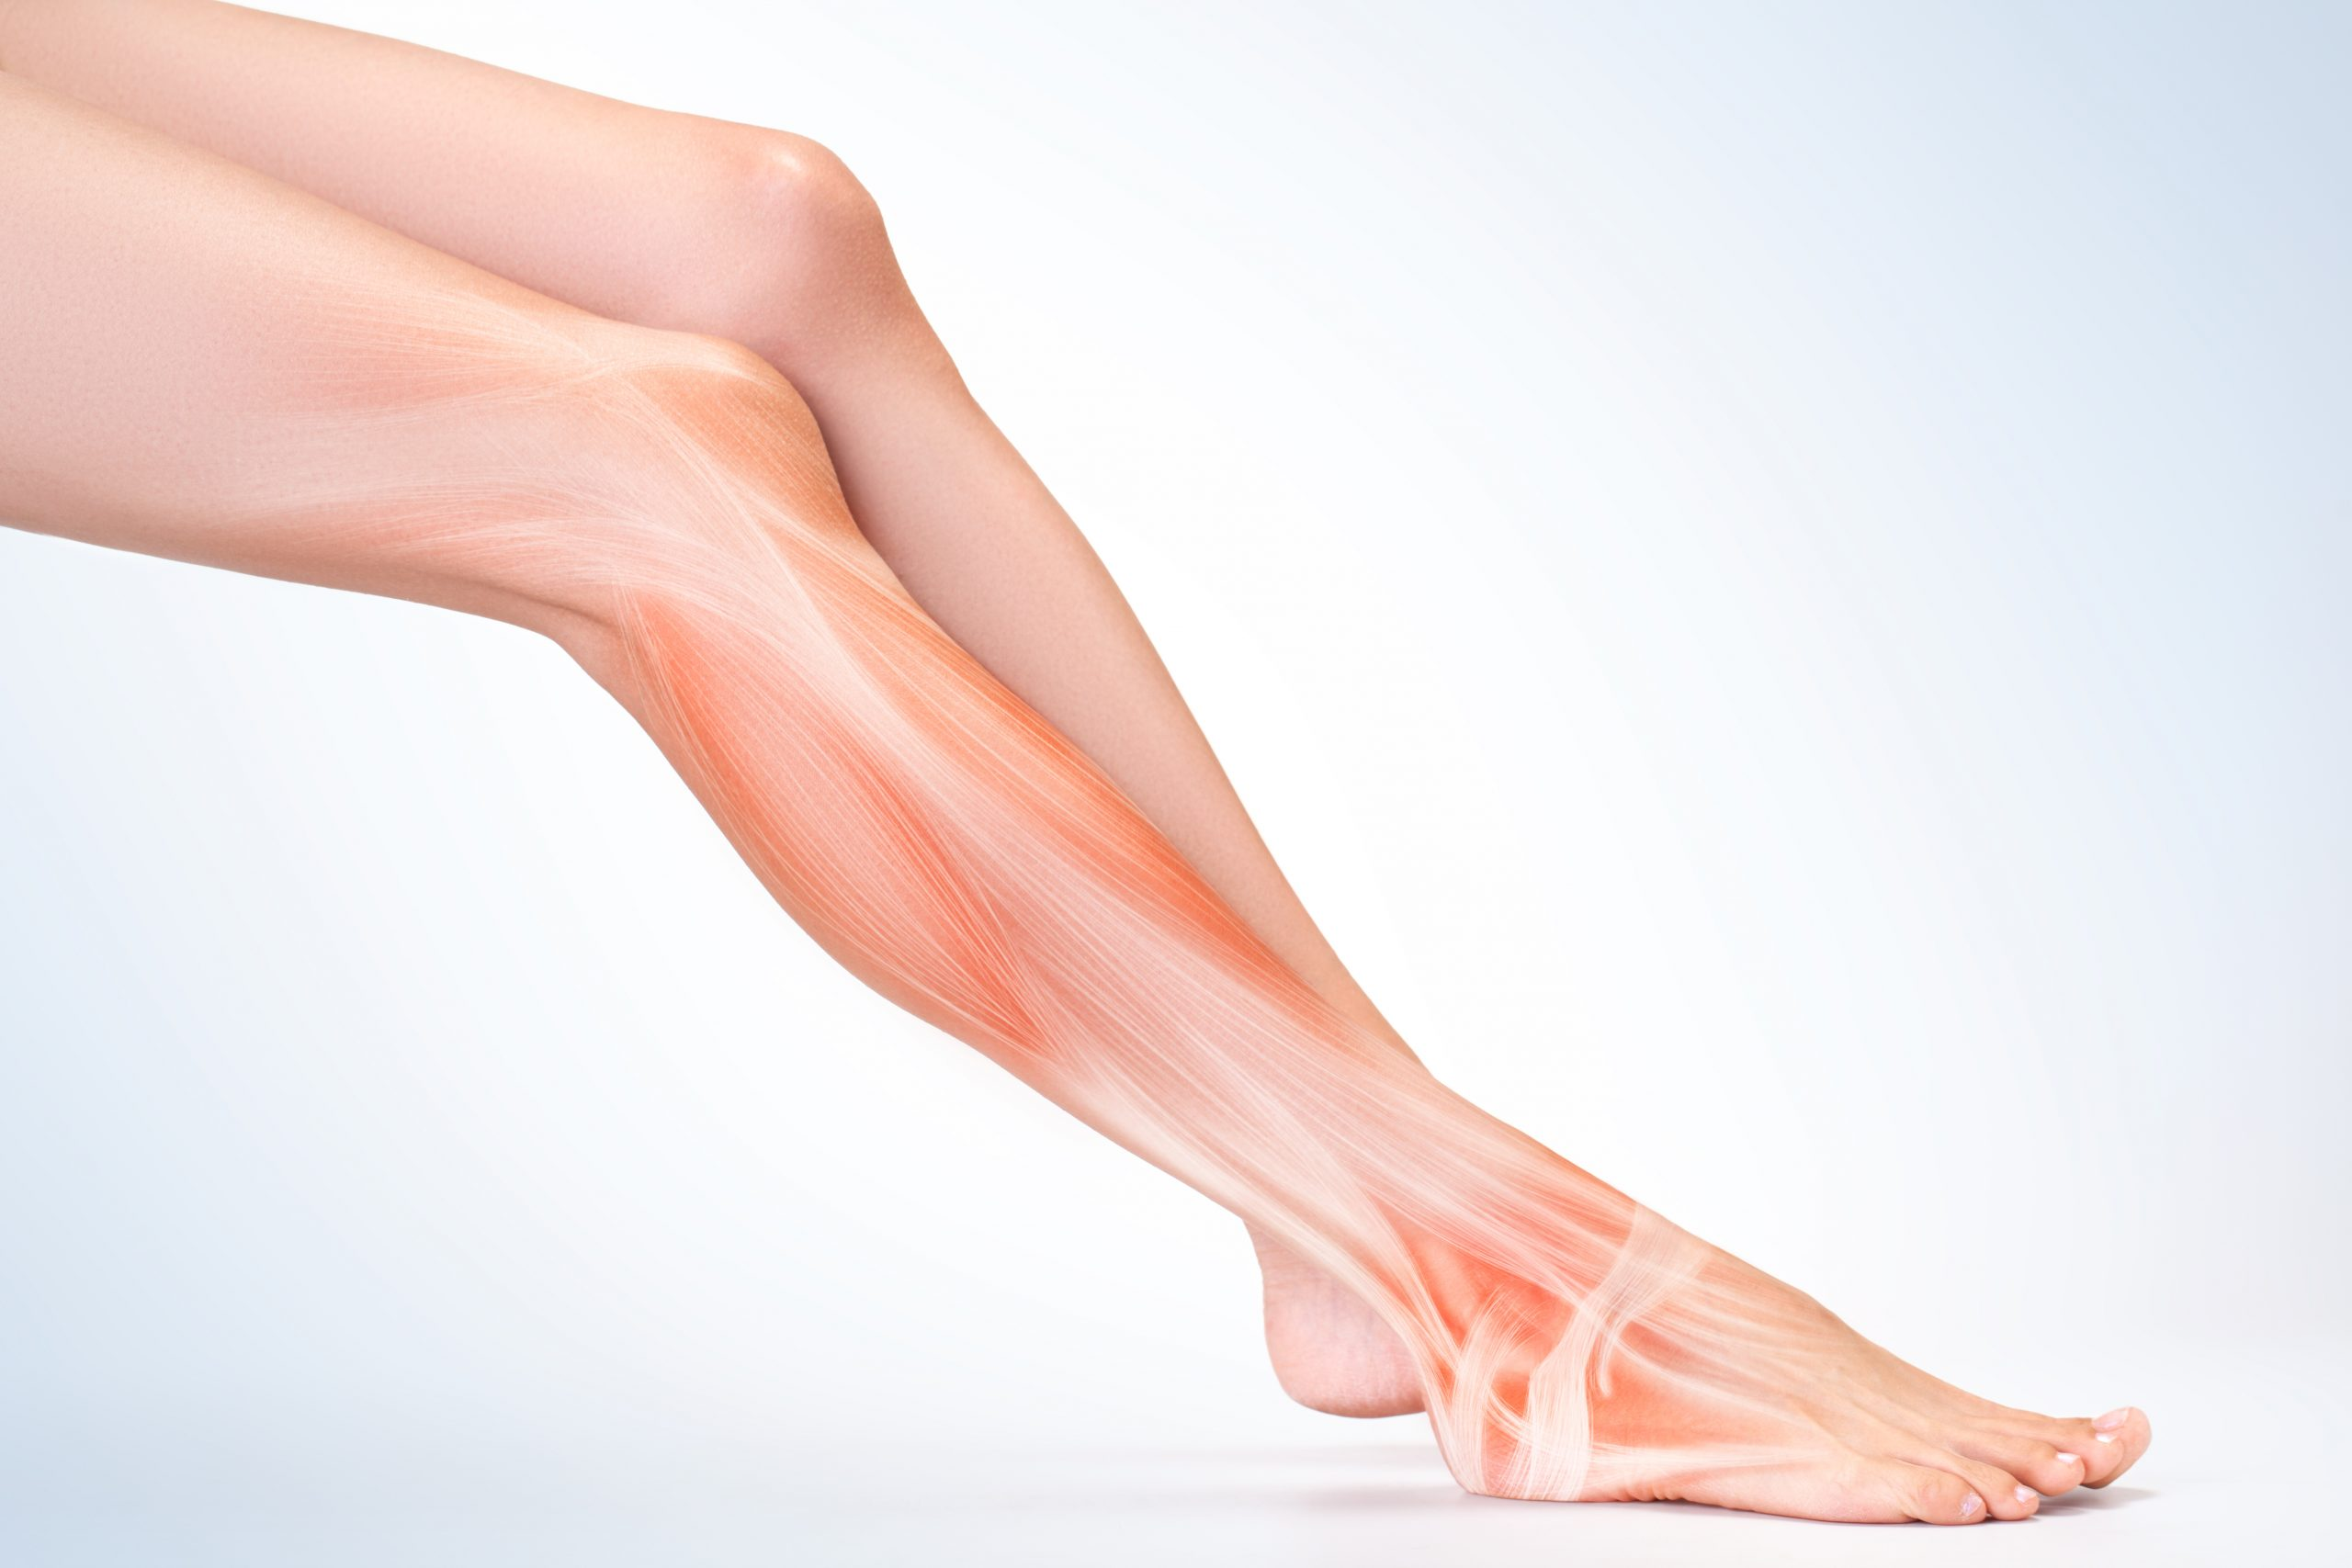 Compartment Syndrome Causes & Treatment